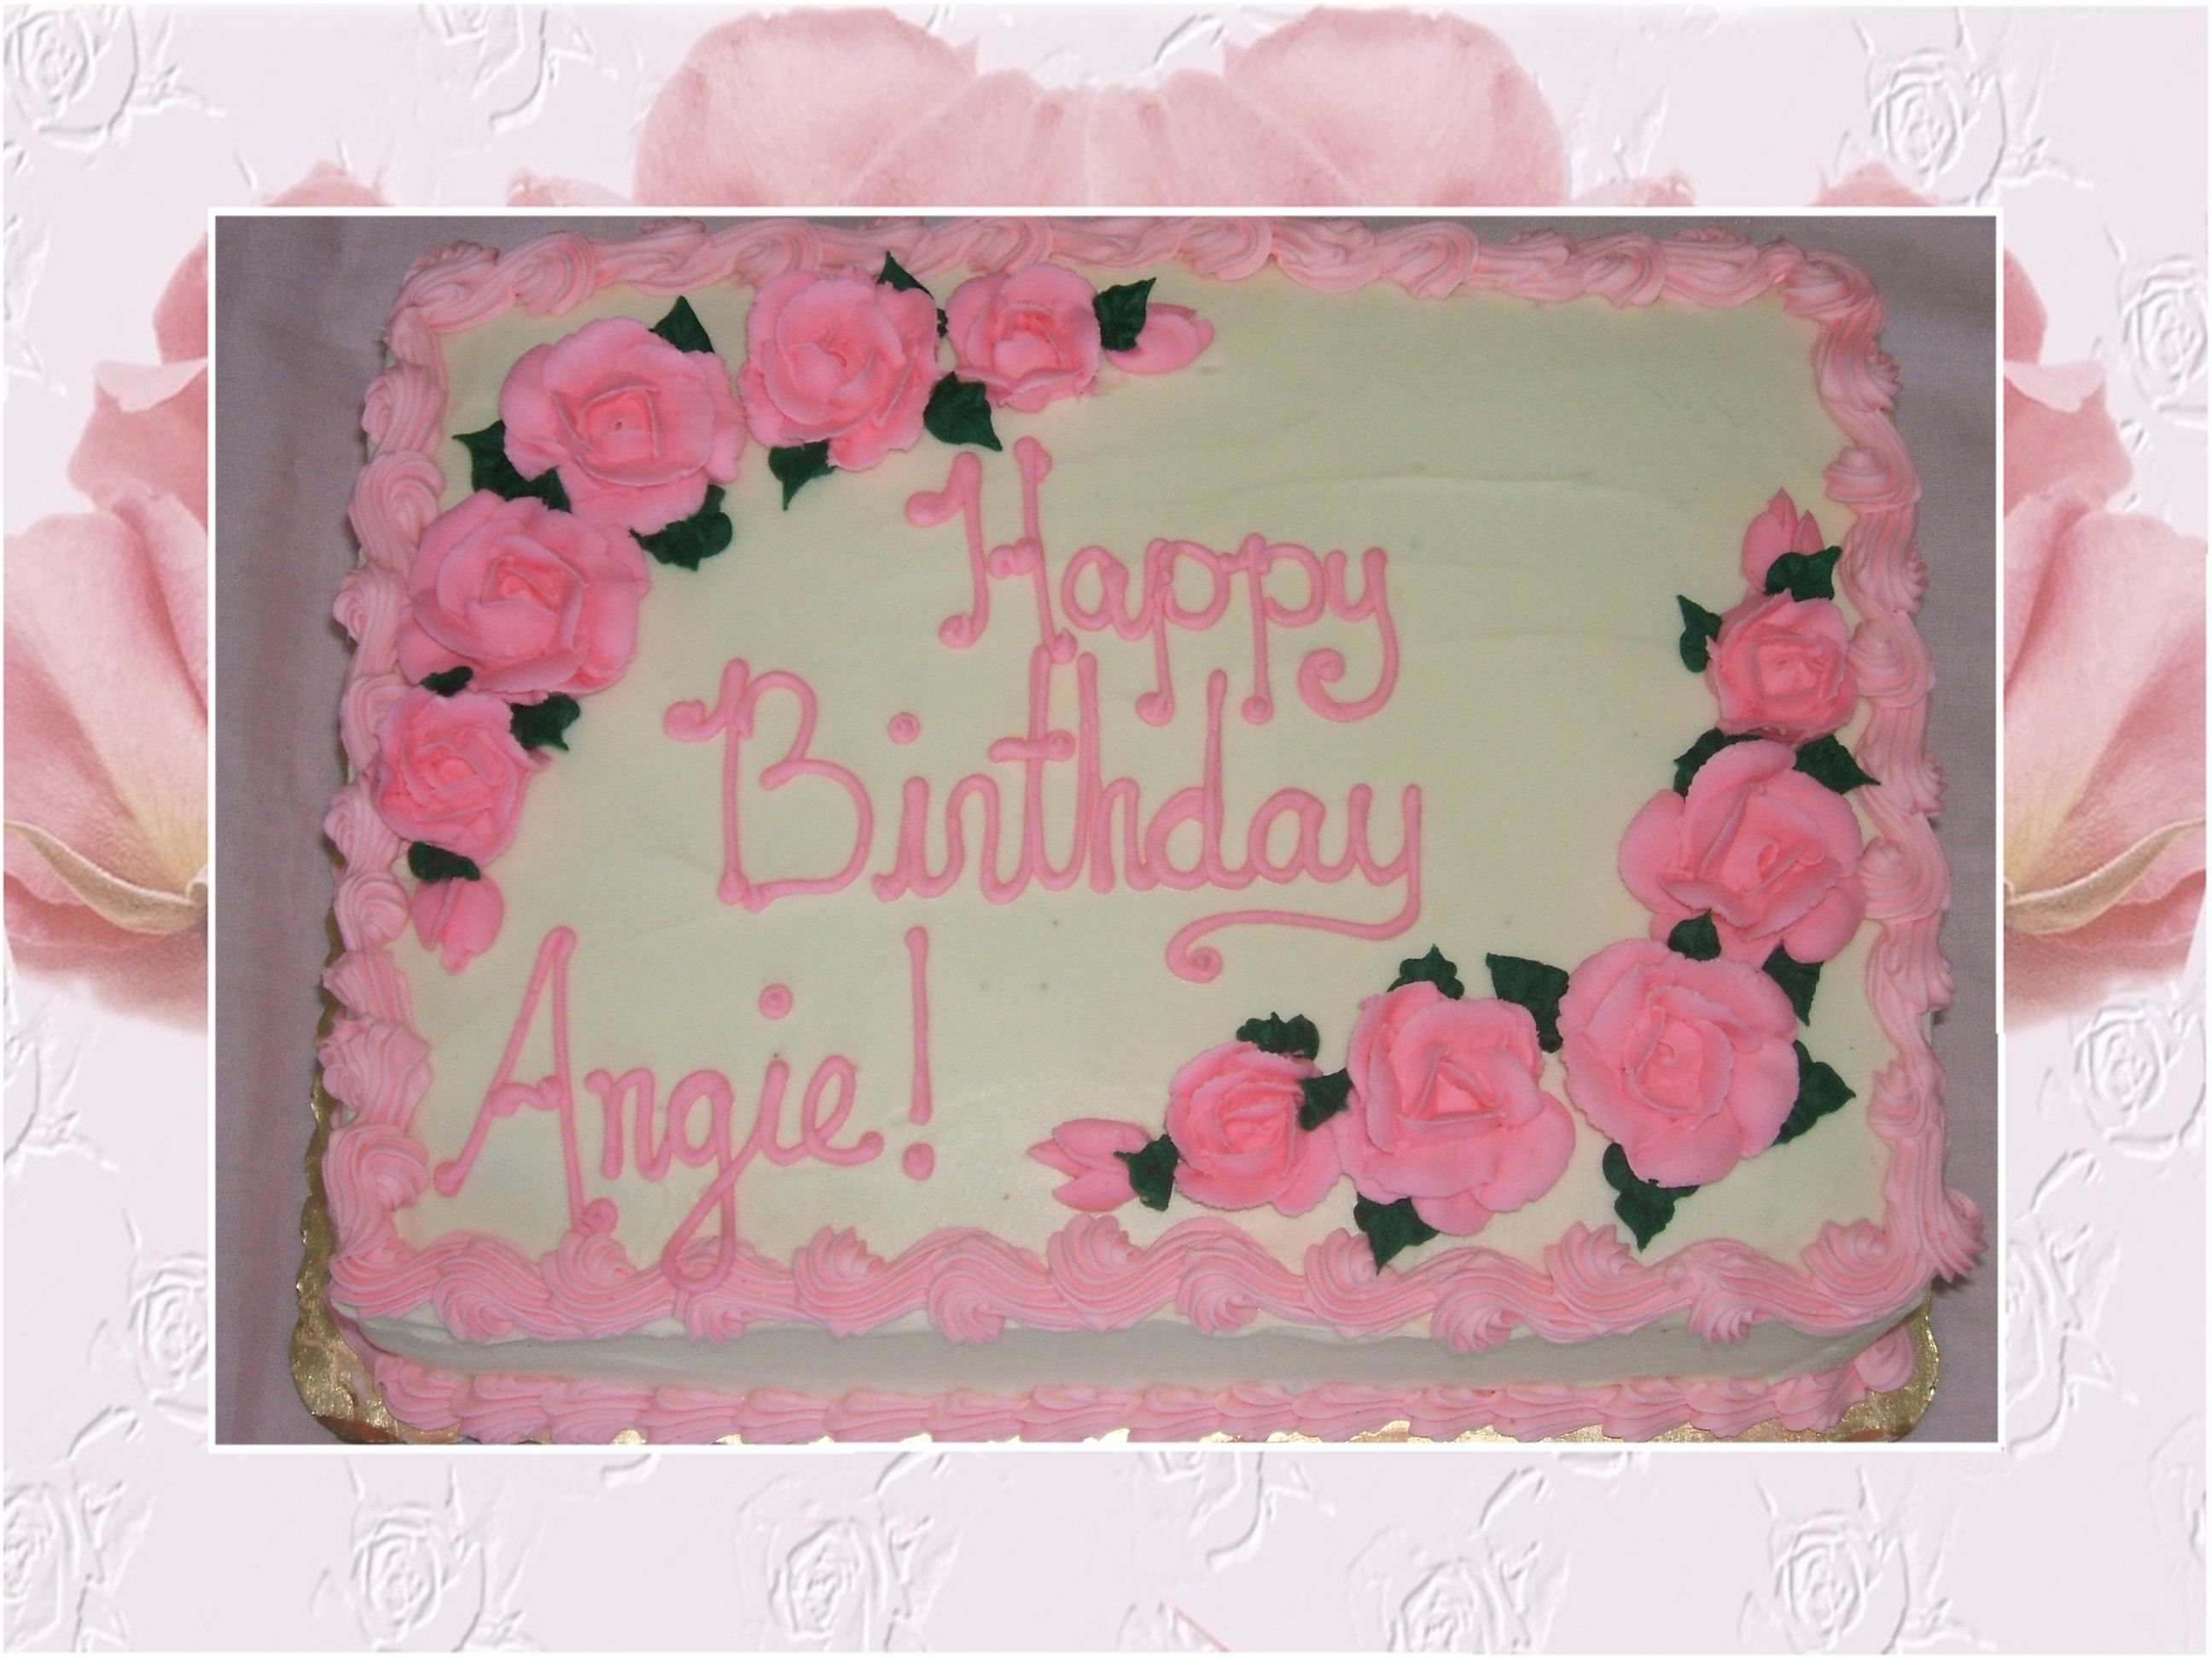 Decorated Birthday Cakes 17 Best Images About Cake Decoration On Pinterest Birthday Cakes